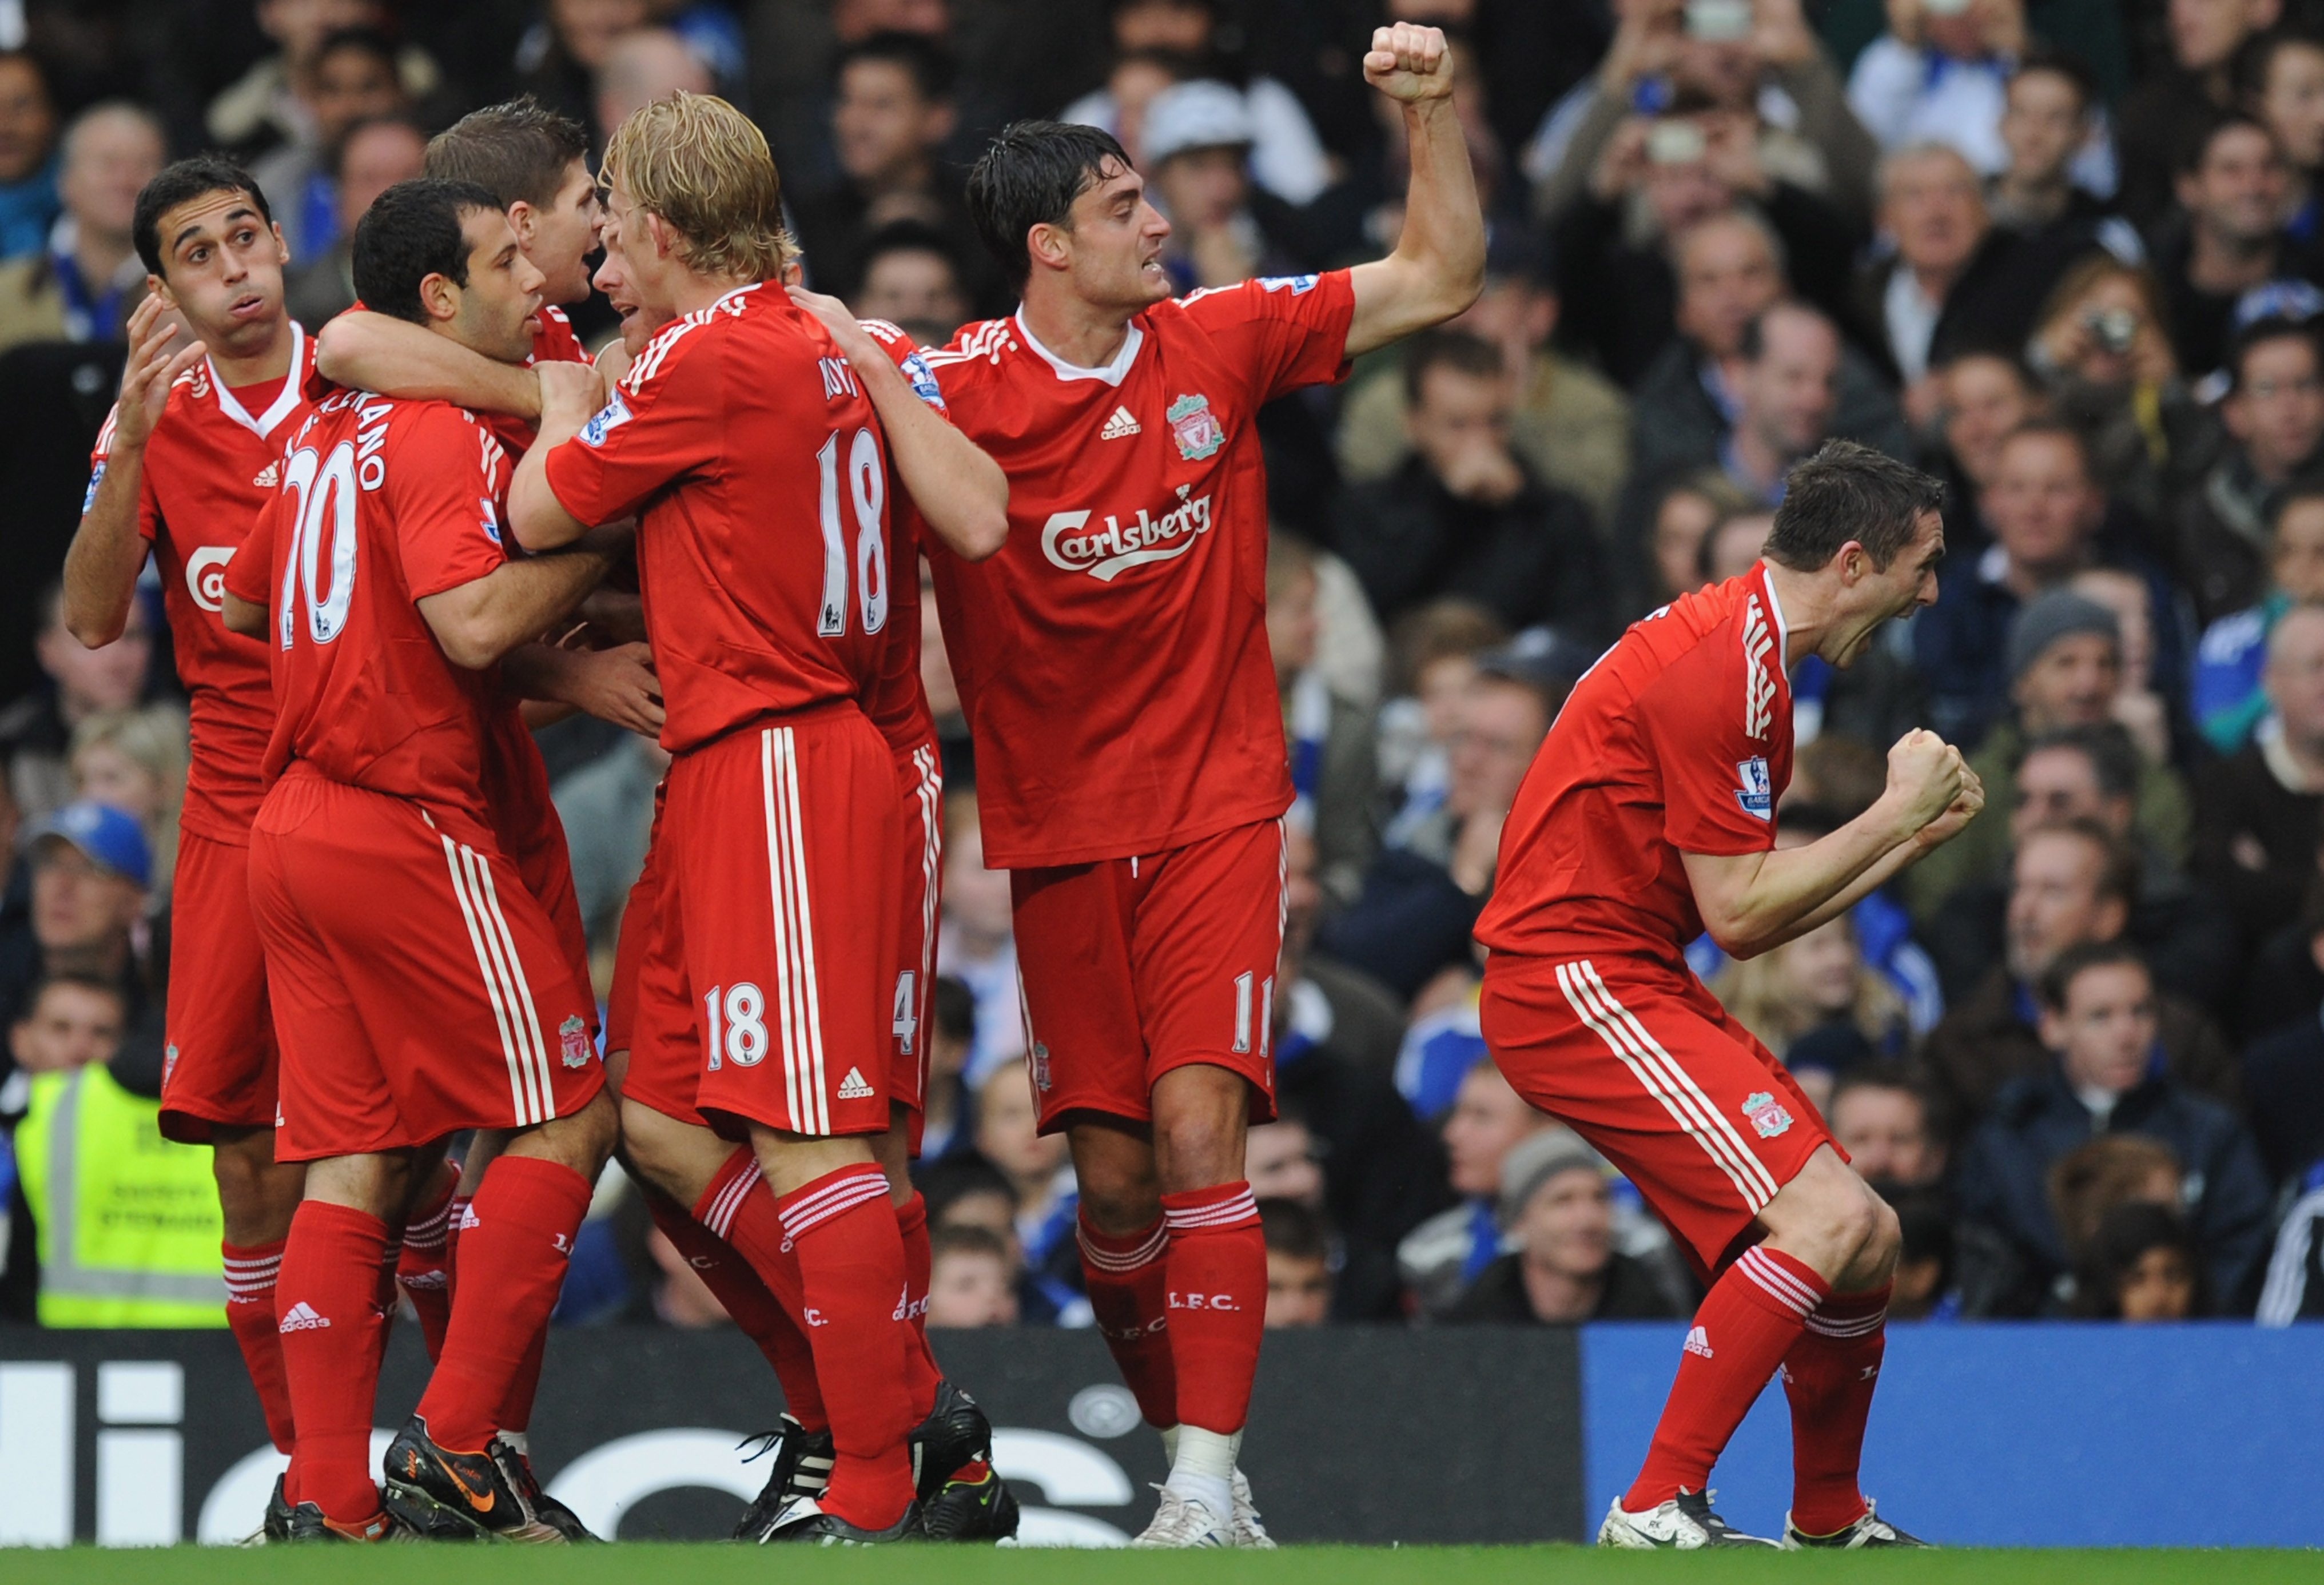 LONDON - OCTOBER 26: Robbie Keane of Liverpool celebrates with his team mates after Xabi Alonso of Liverpool scored the first goal during the Barclays Premier League match between Chelsea and Liverpool at Stamford Bridge on October 26, 2008 in London, Eng